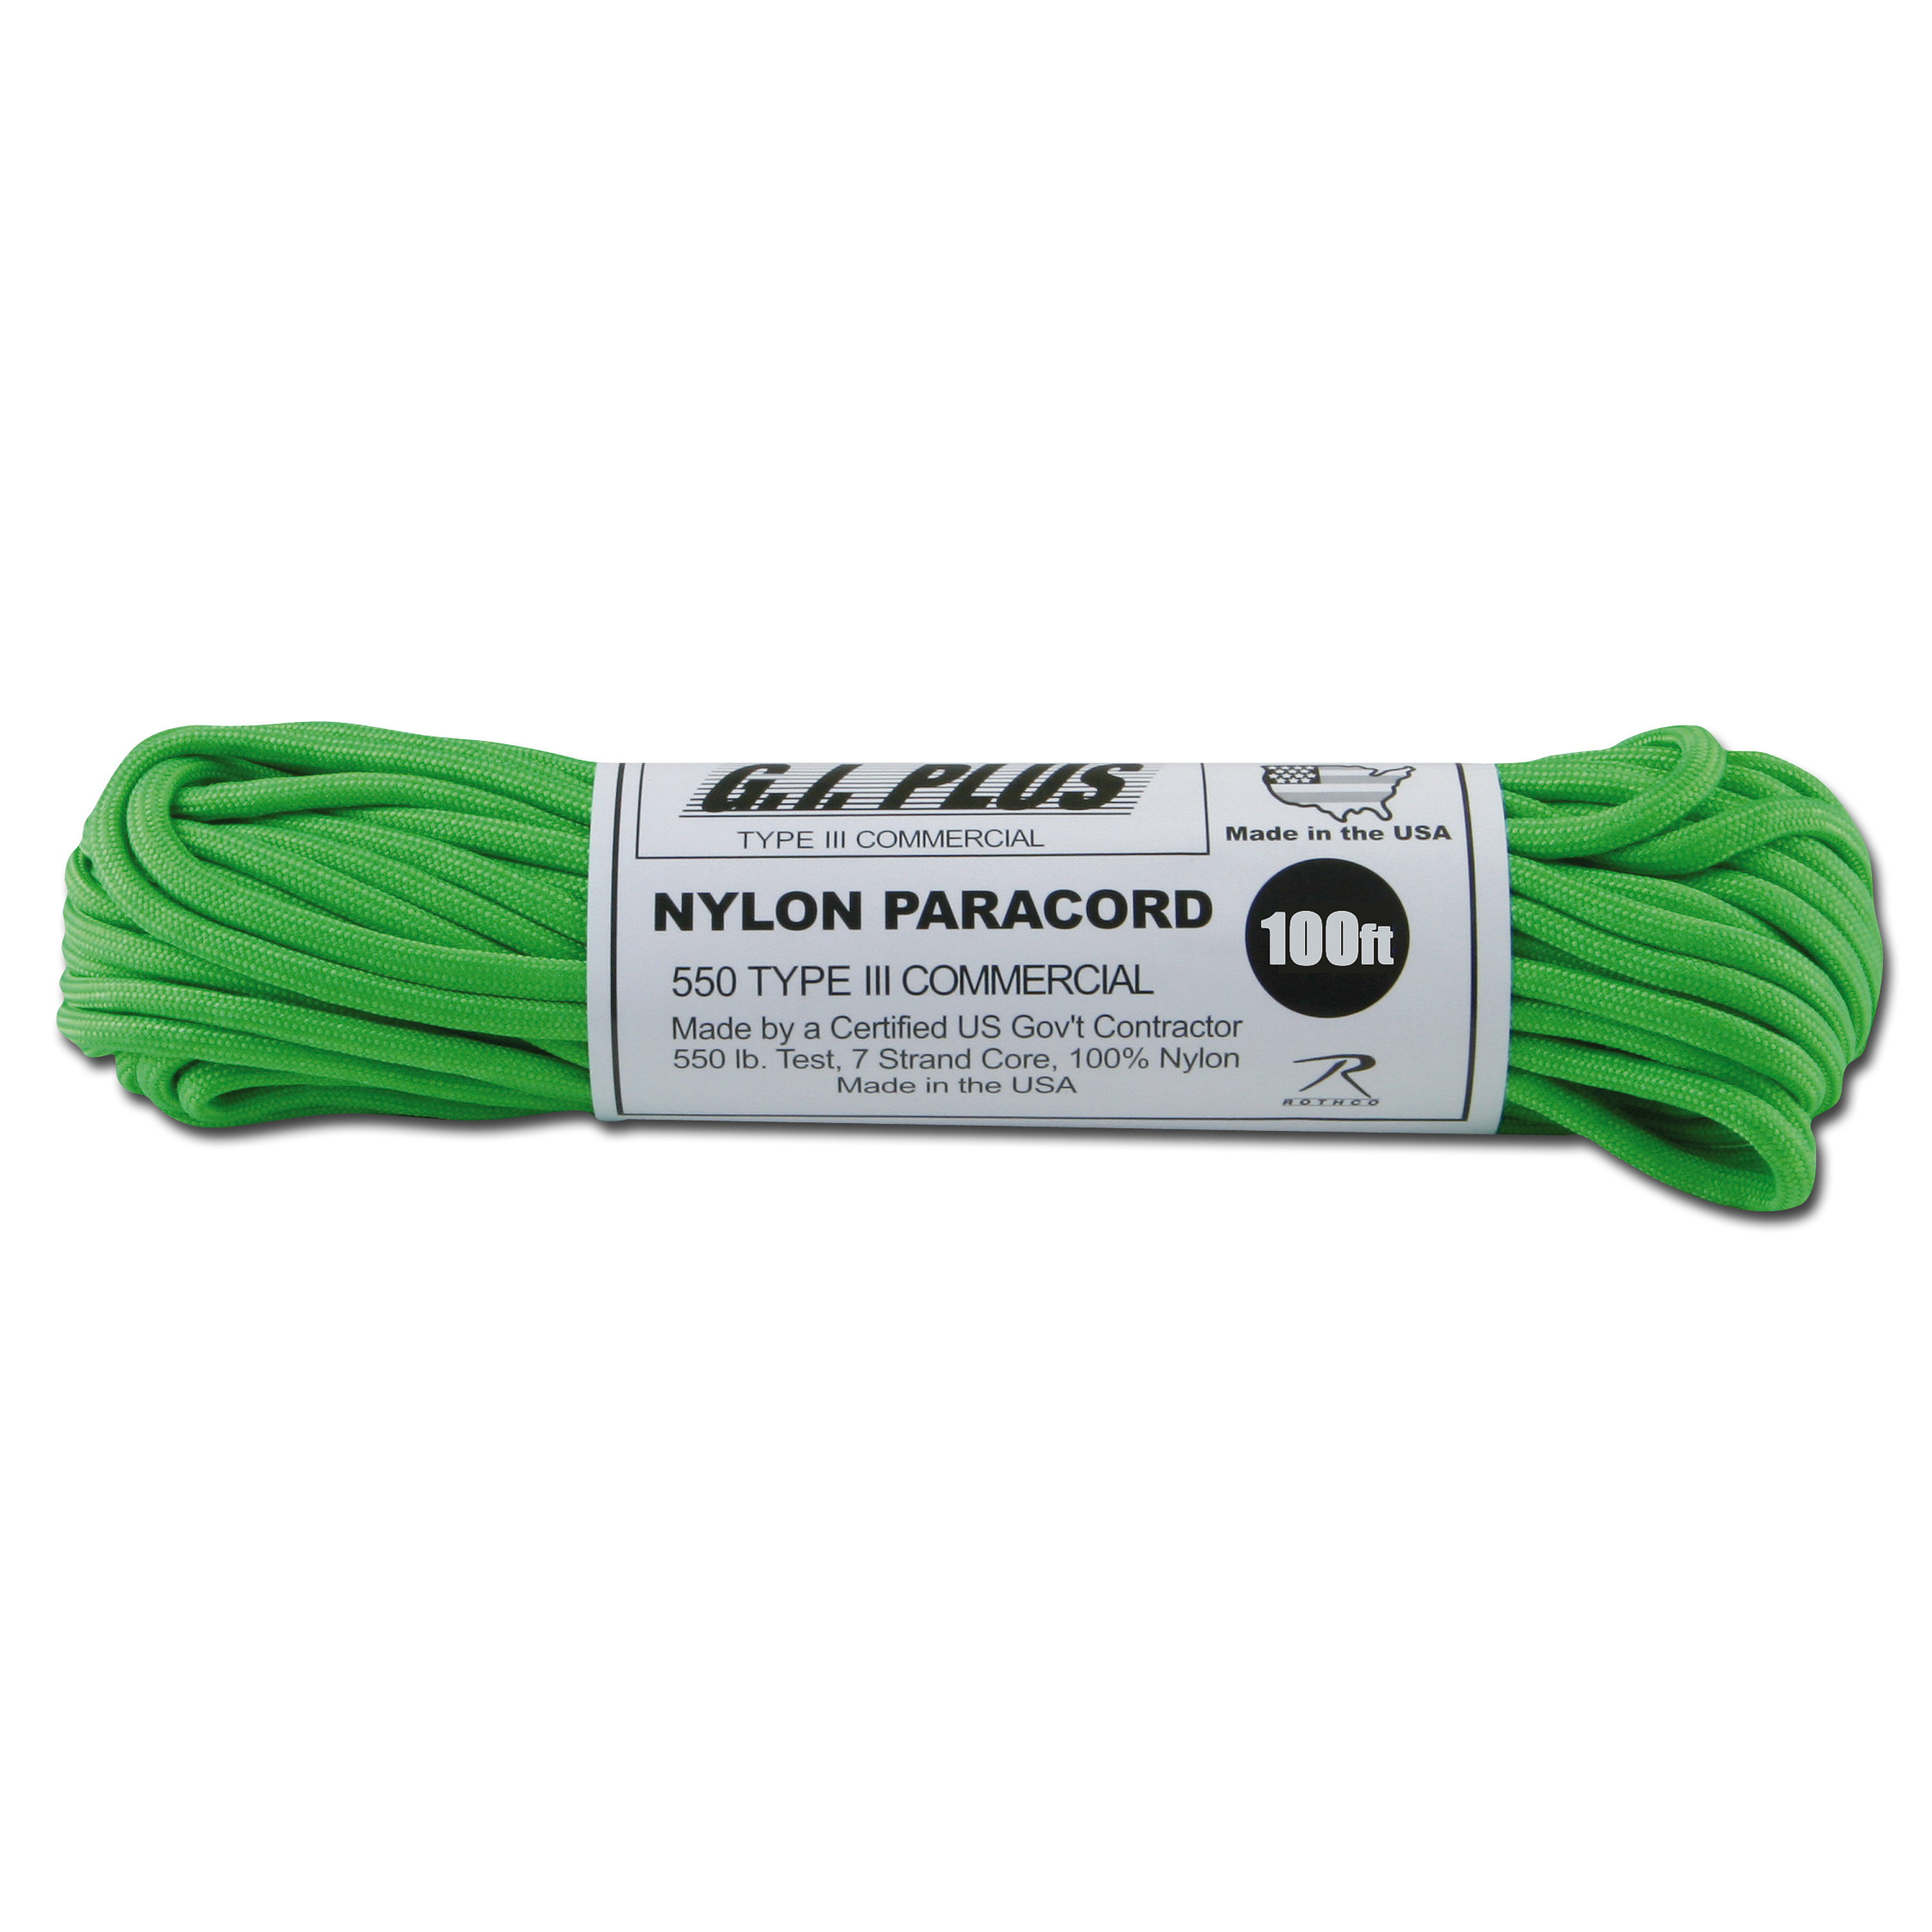 Paracord 550 lb Safety grün 100 ft. Nylon